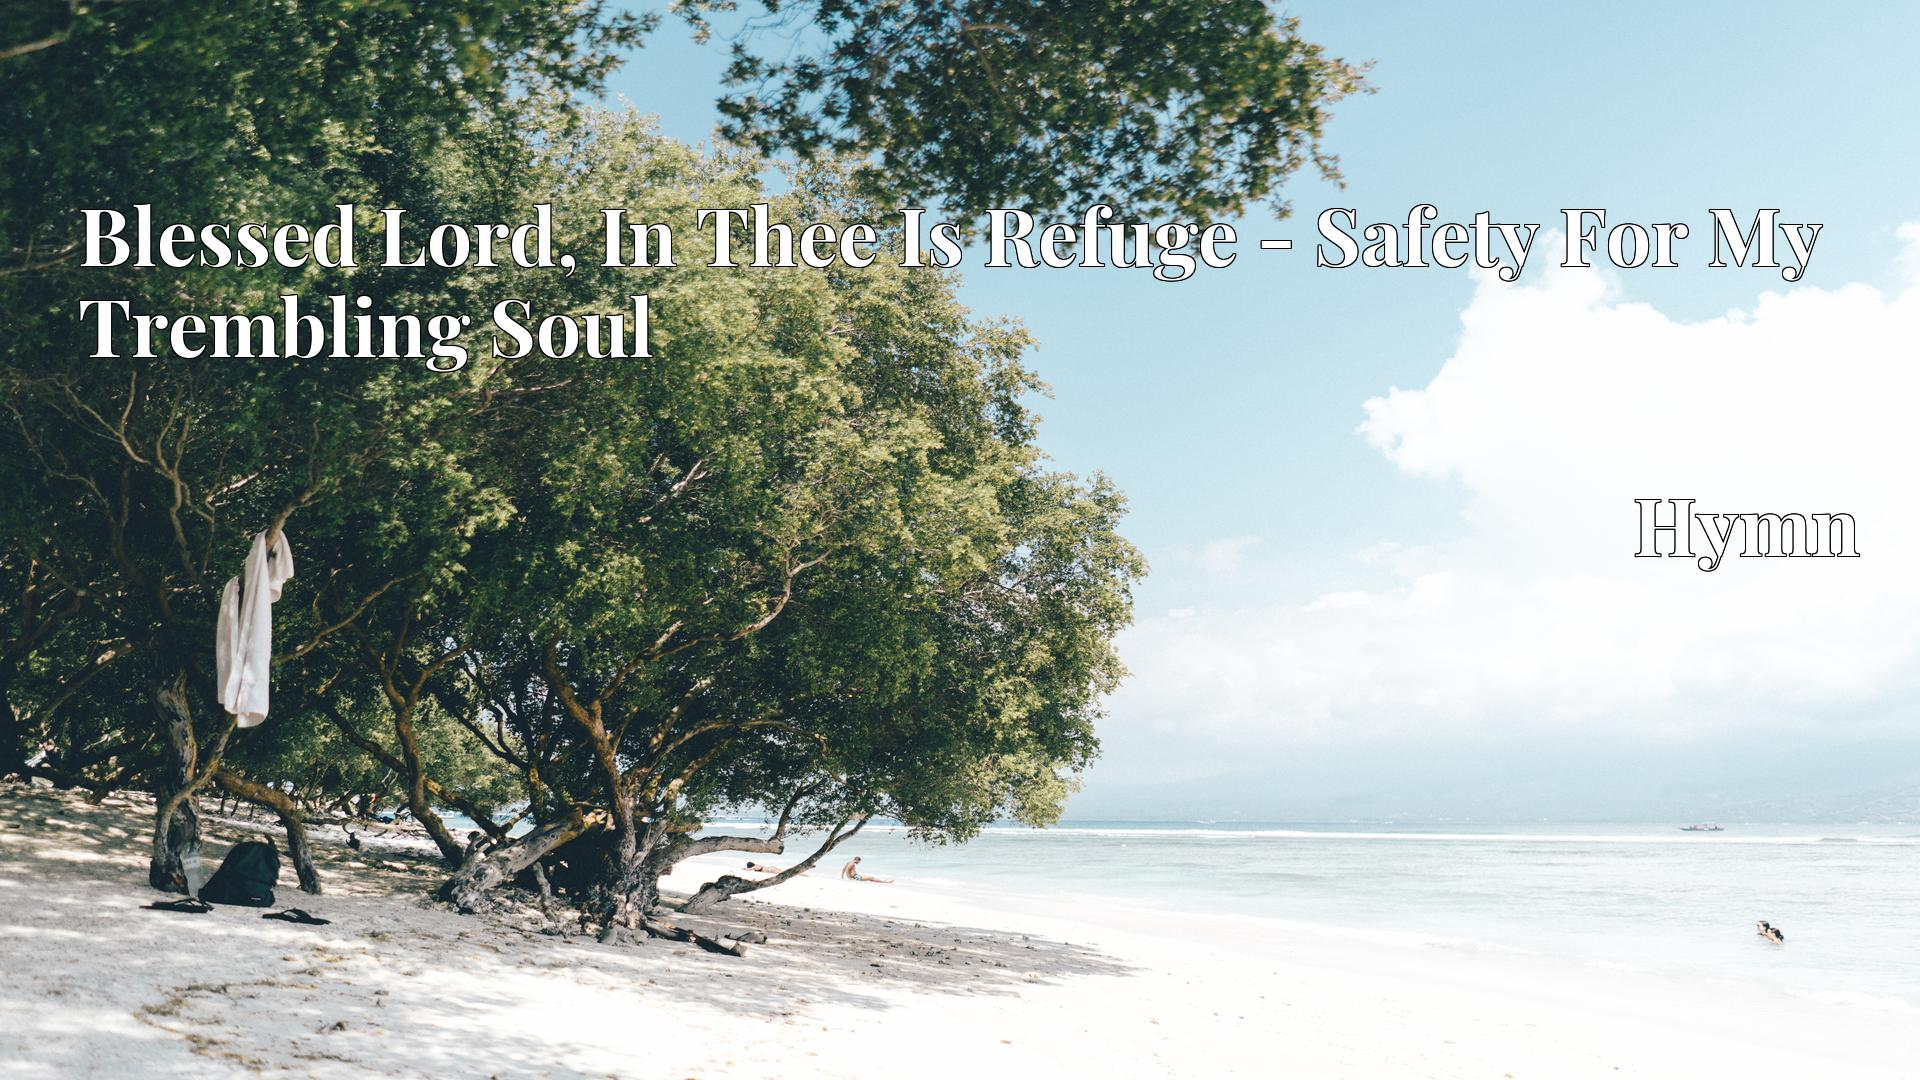 Blessed Lord, In Thee Is Refuge - Safety For My Trembling Soul Hymn